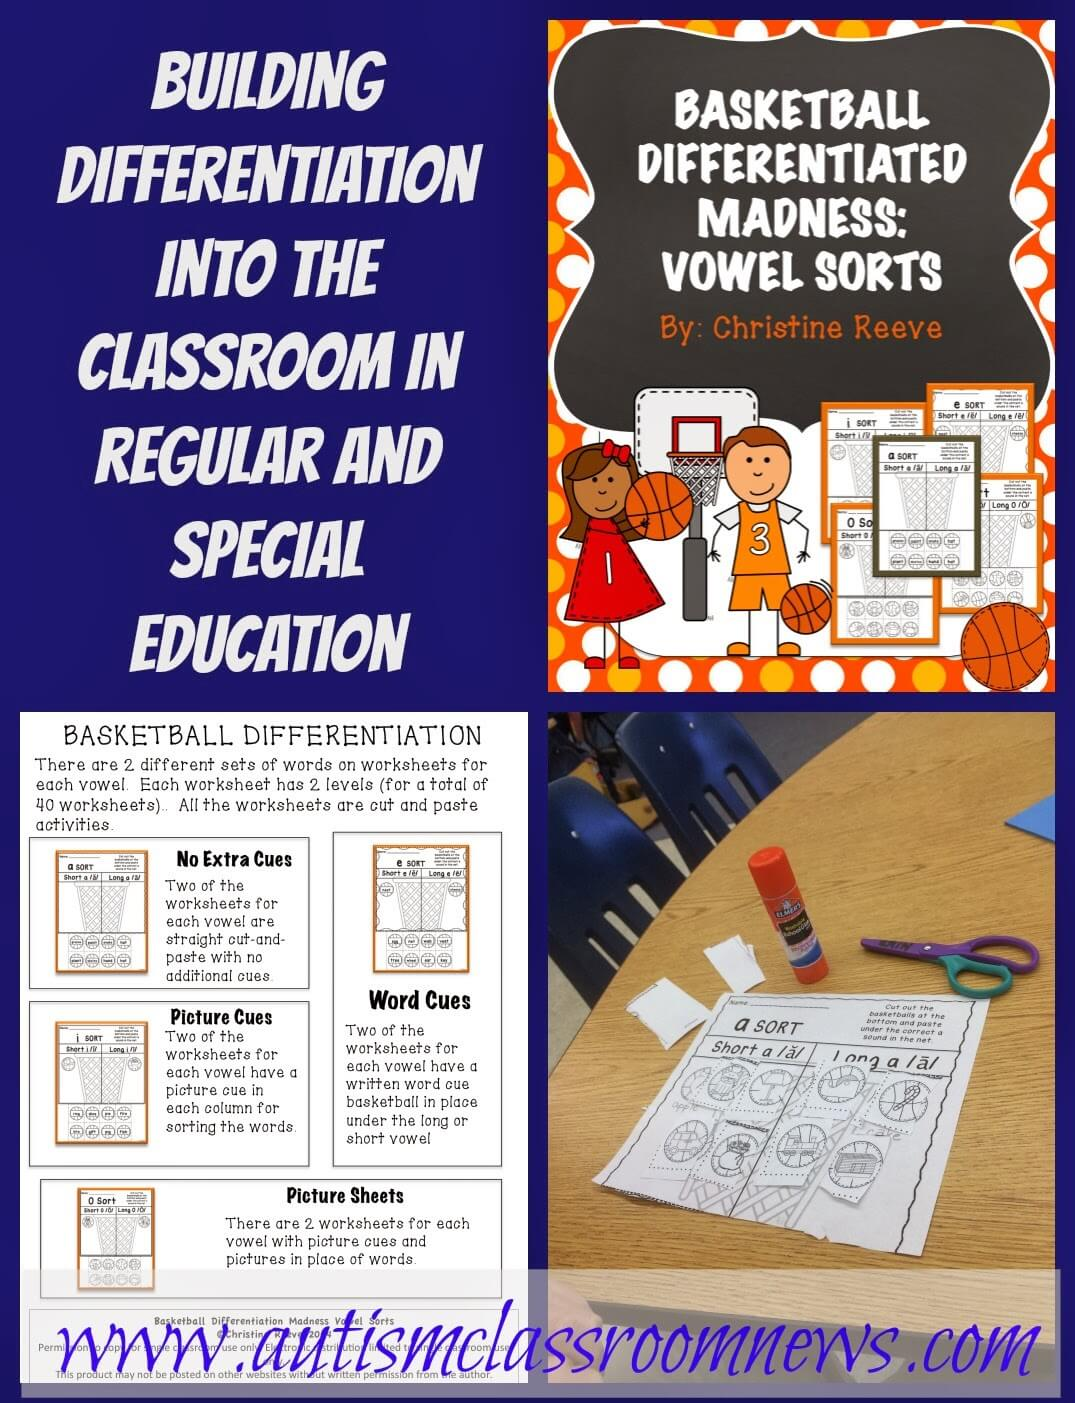 Building Differentiation Into The Classroom